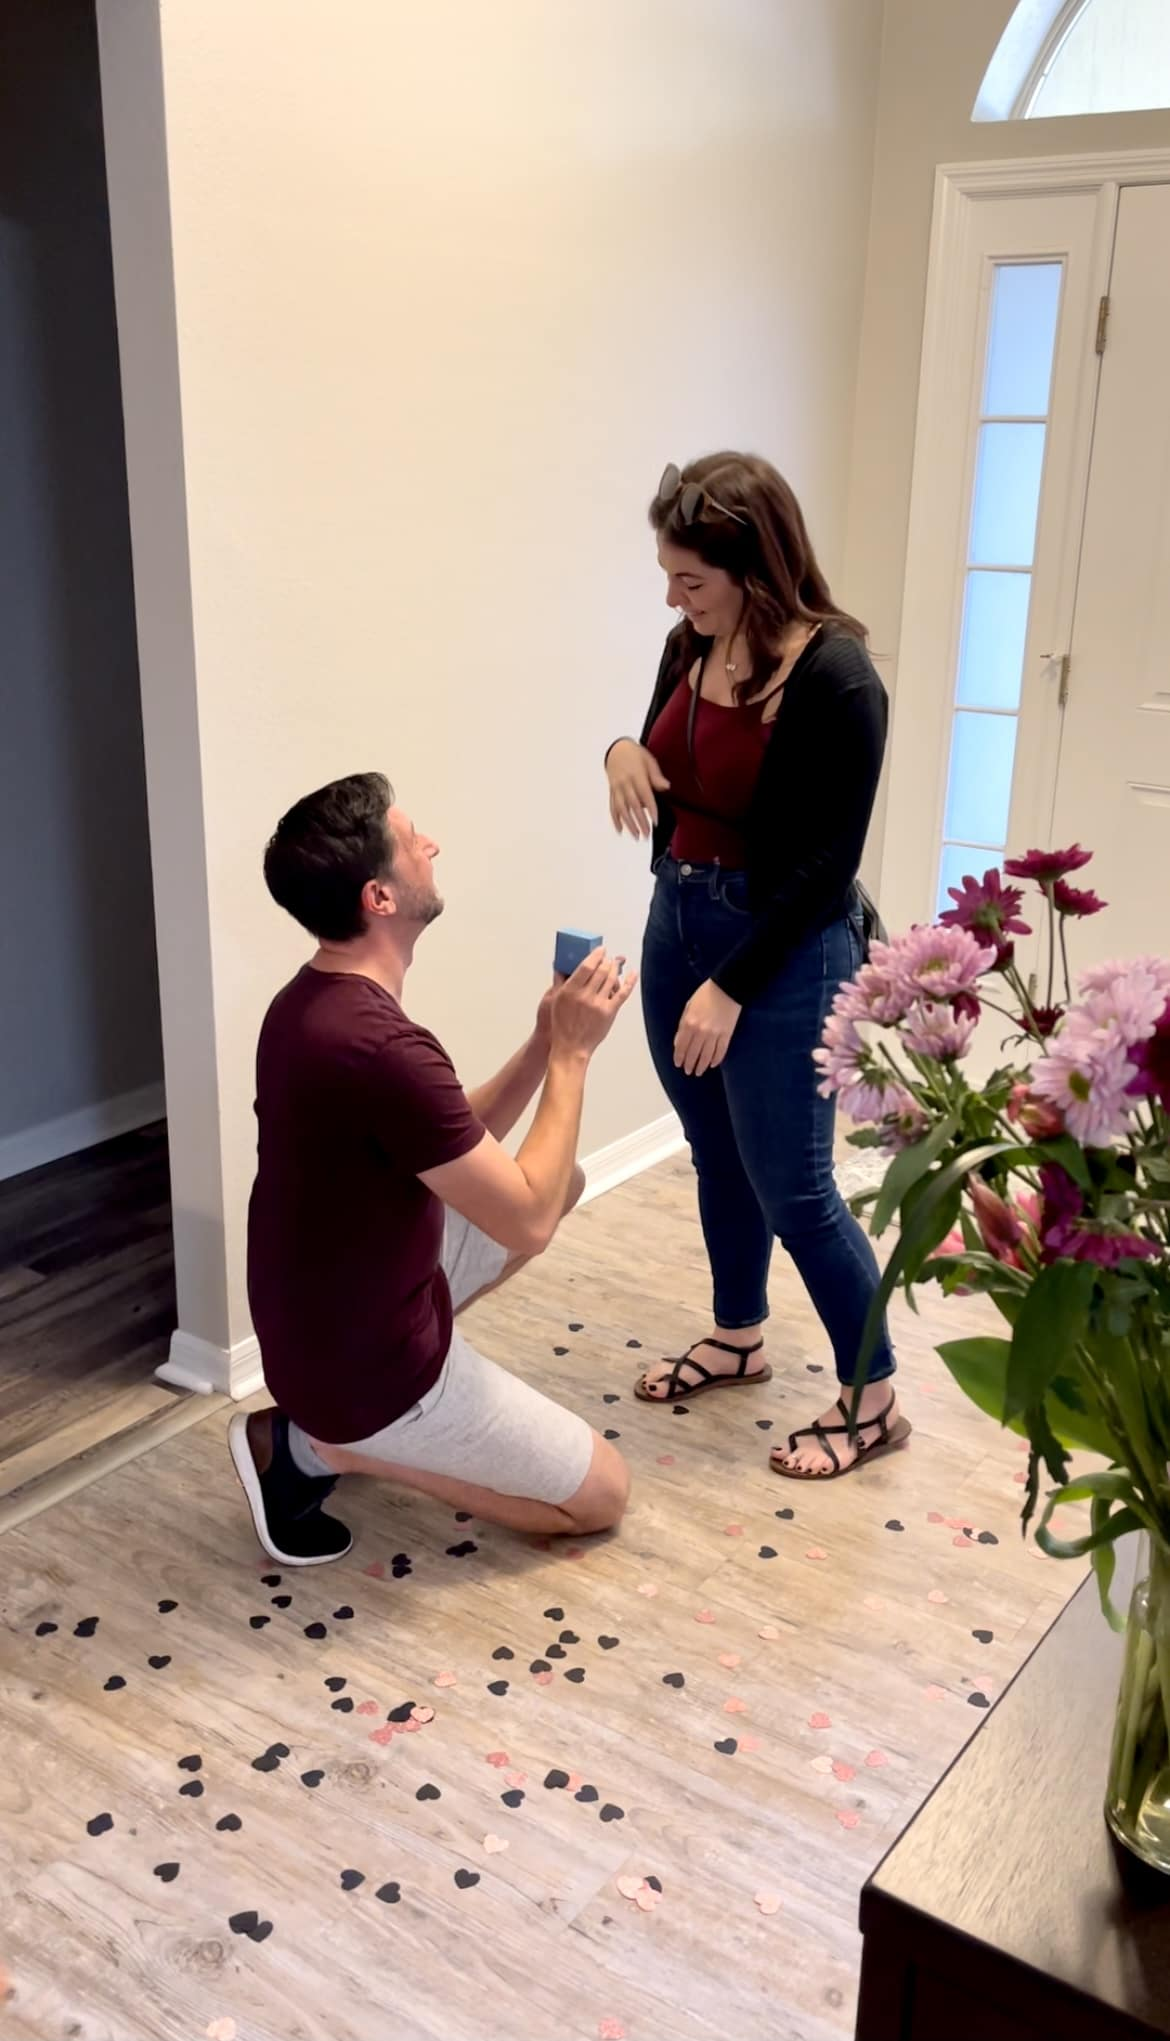 groom to be holding open the ring box for his girlfriend during their central florida at home marriage proposal